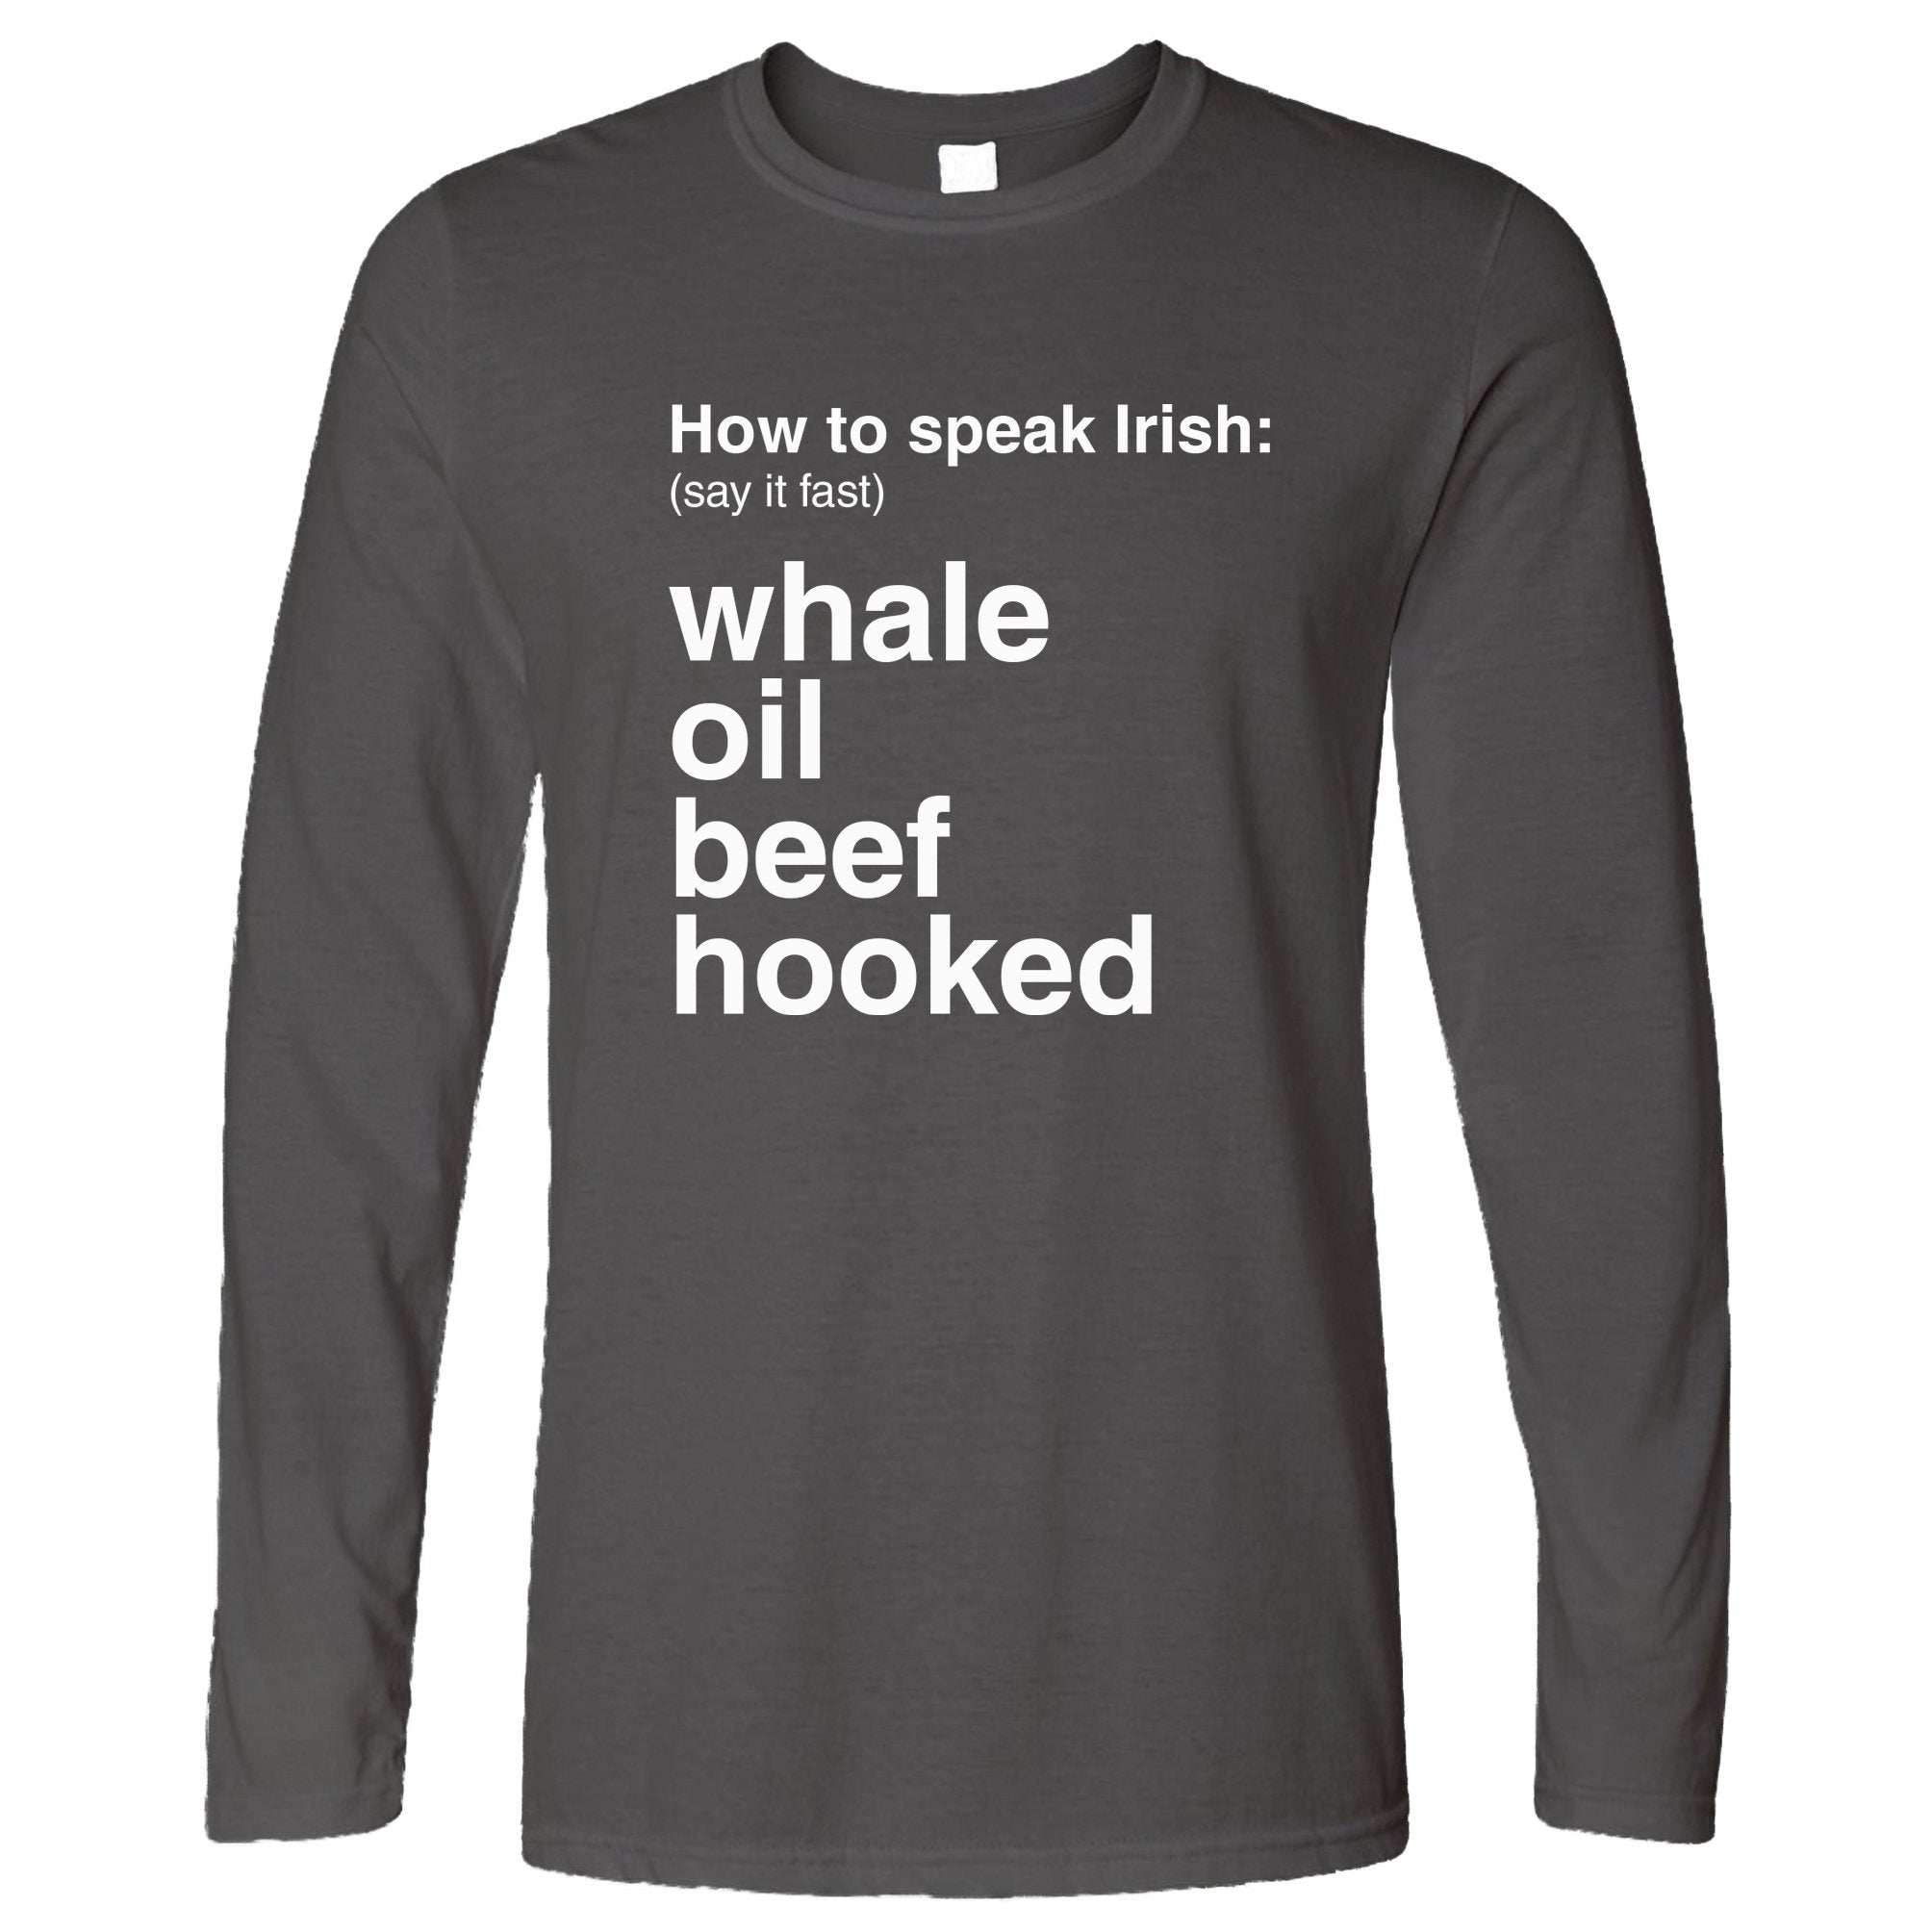 St. Patricks Long Sleeve How To Speak Irish T-Shirt